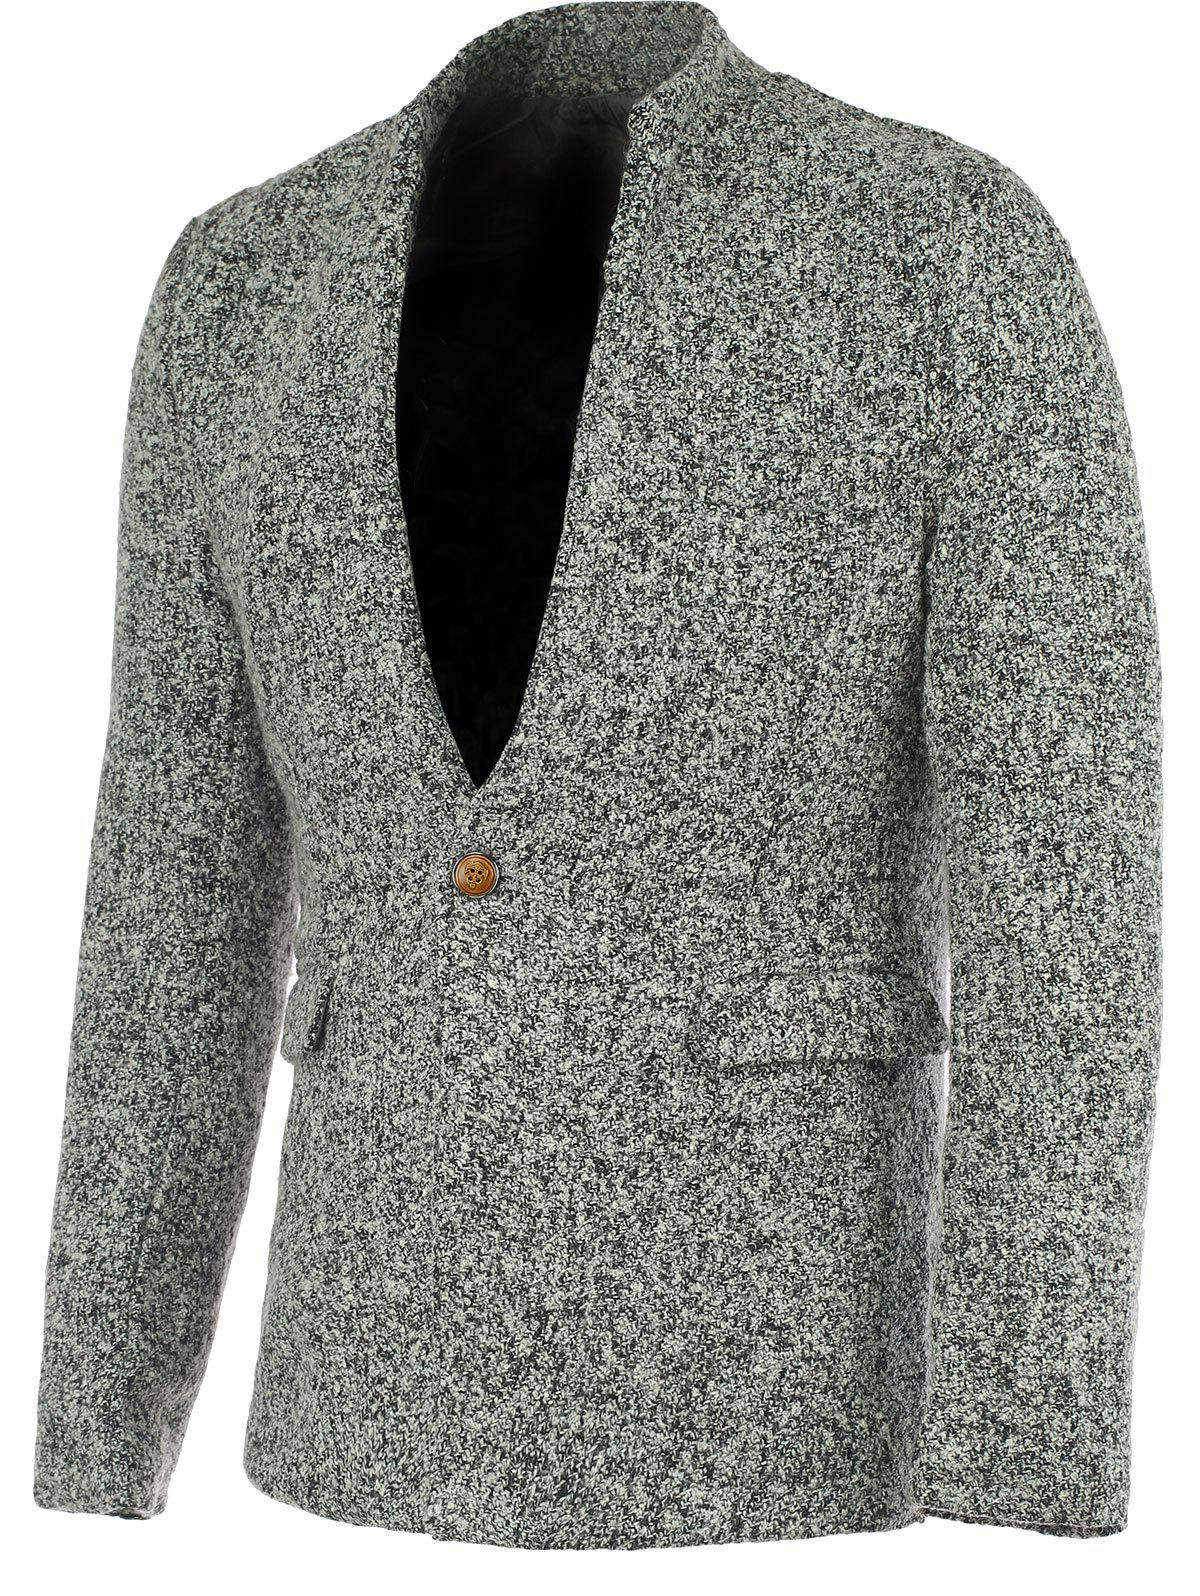 Stylish Stand Collar Long Sleeves Gray Melange Wool Blazer For Men - GRAY 2XL